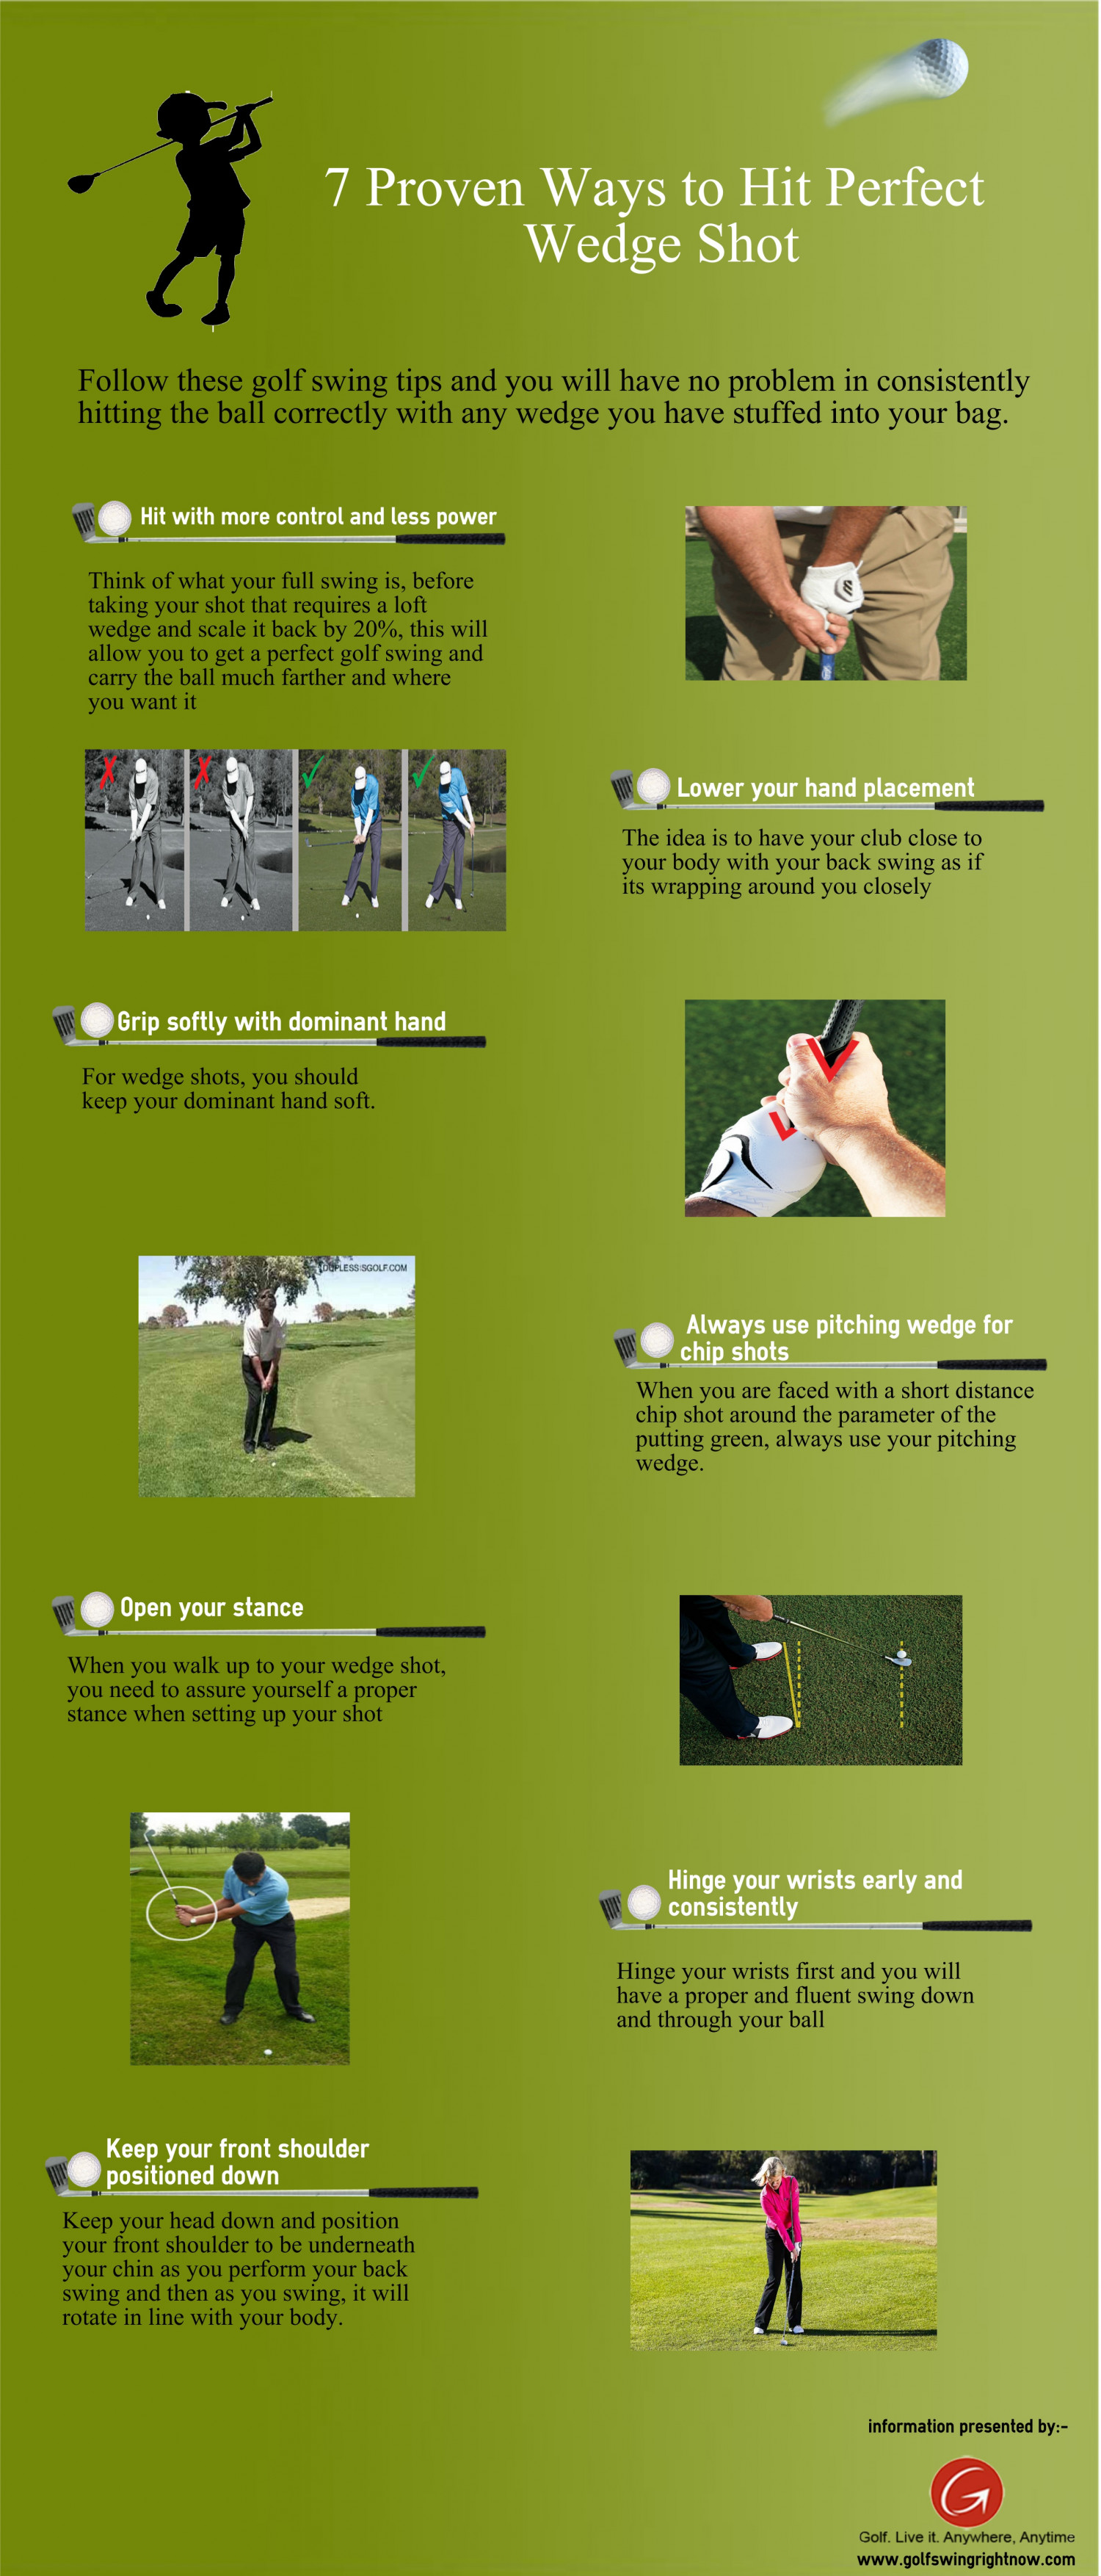 7 Proven Ways to Hit the Wedge Shot Infographic